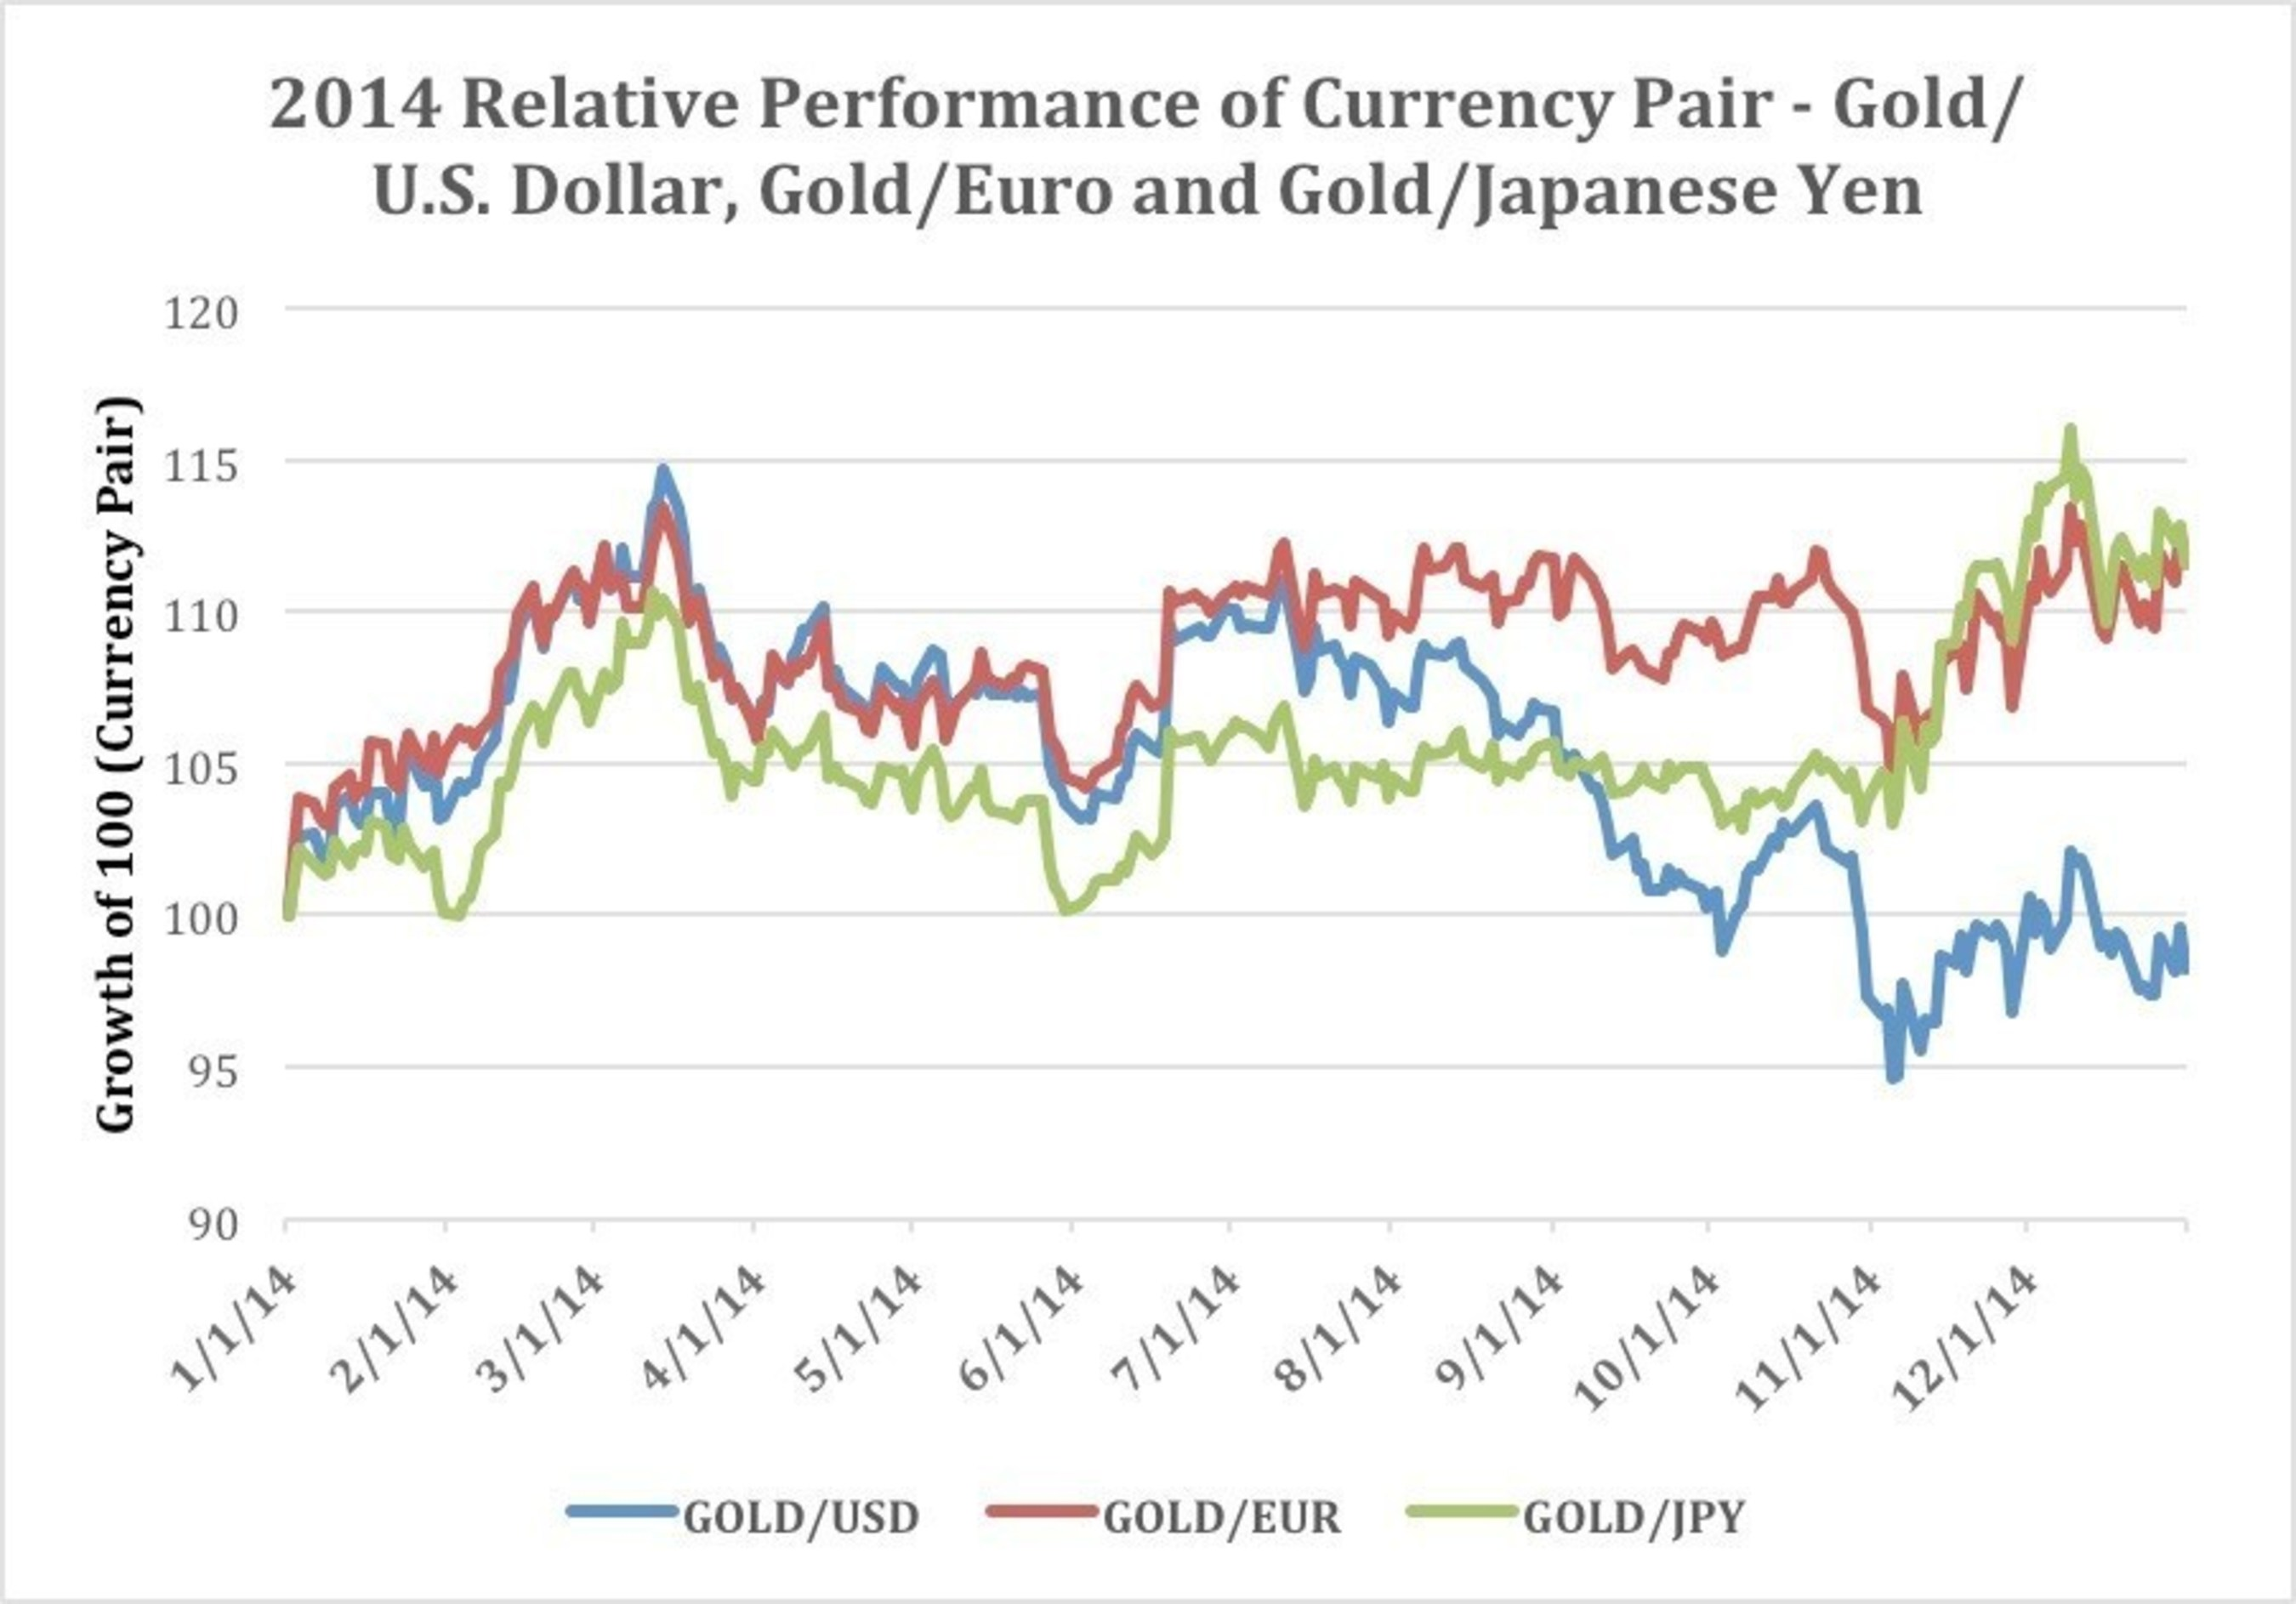 2014 Relative Performance of Currency Pair - Gold/U.S. Dollar, Gold/Euro and Gold/Japanese Yen